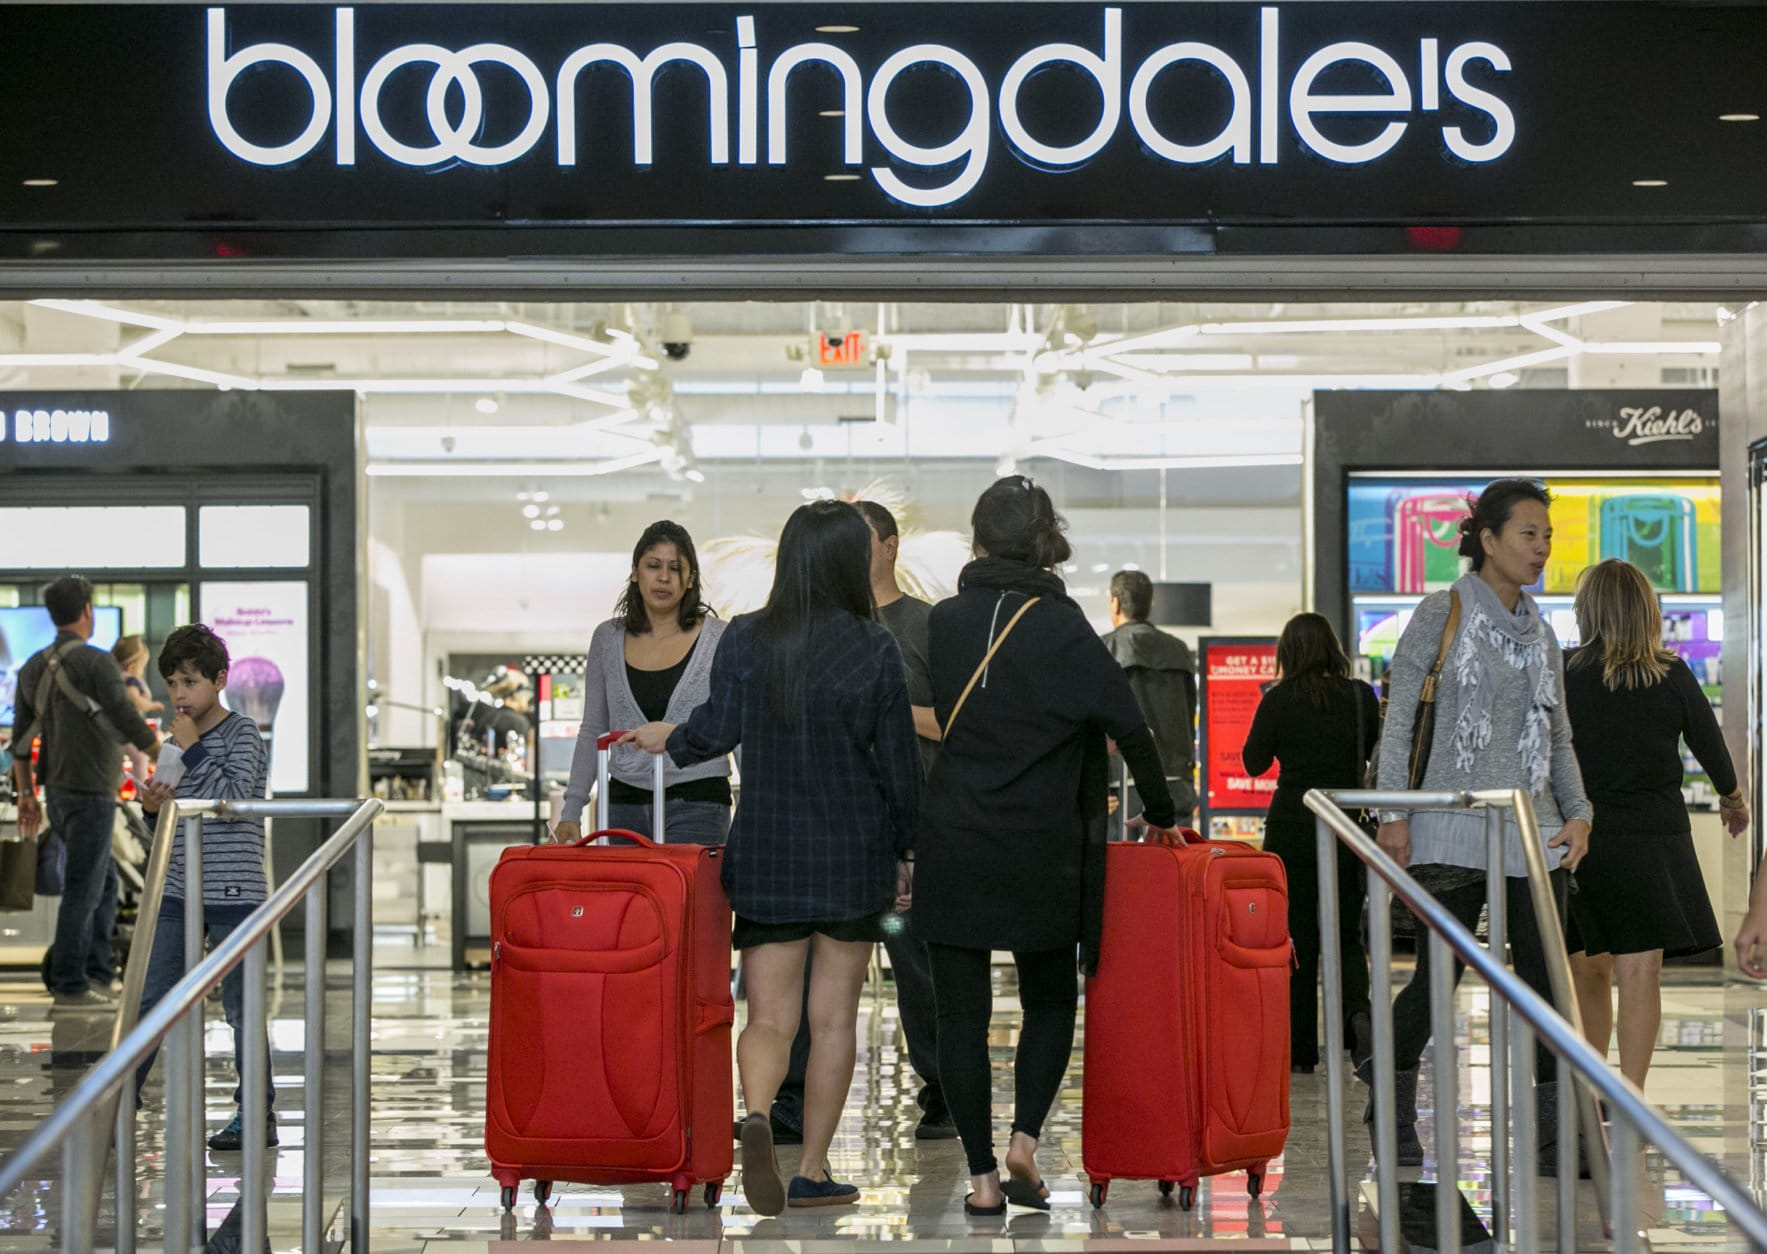 Consumers shop at the Bloomingdale's store at the Glendale Galleria shopping mall in Glendale, Calif, Friday, Nov. 28, 2014. Stores are welcoming a second wave of consumers in what has become a two-day kickoff to the holiday shopping season. The National Retail Federation forecasts holiday sales will grow 4.1 percent to $616.9 billion, the biggest jump since 2011. (AP Photo/Damian Dovarganes)